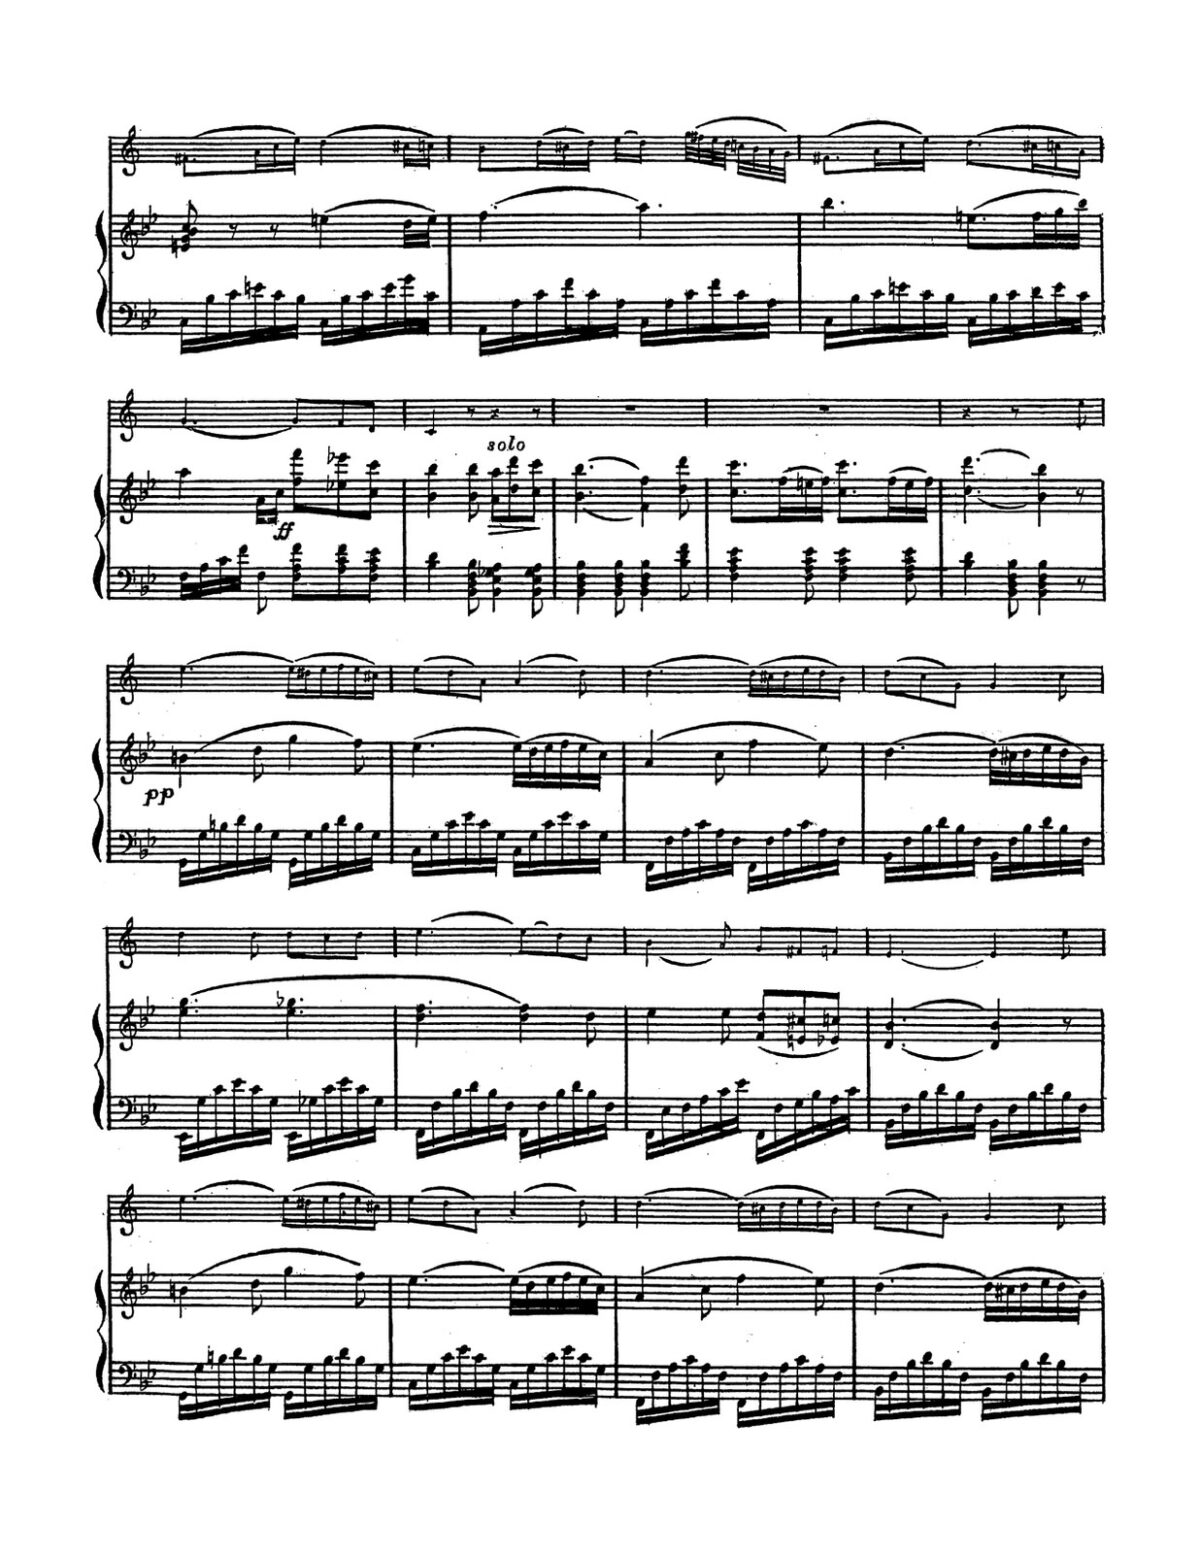 Arban, Caprice and Variations-p06